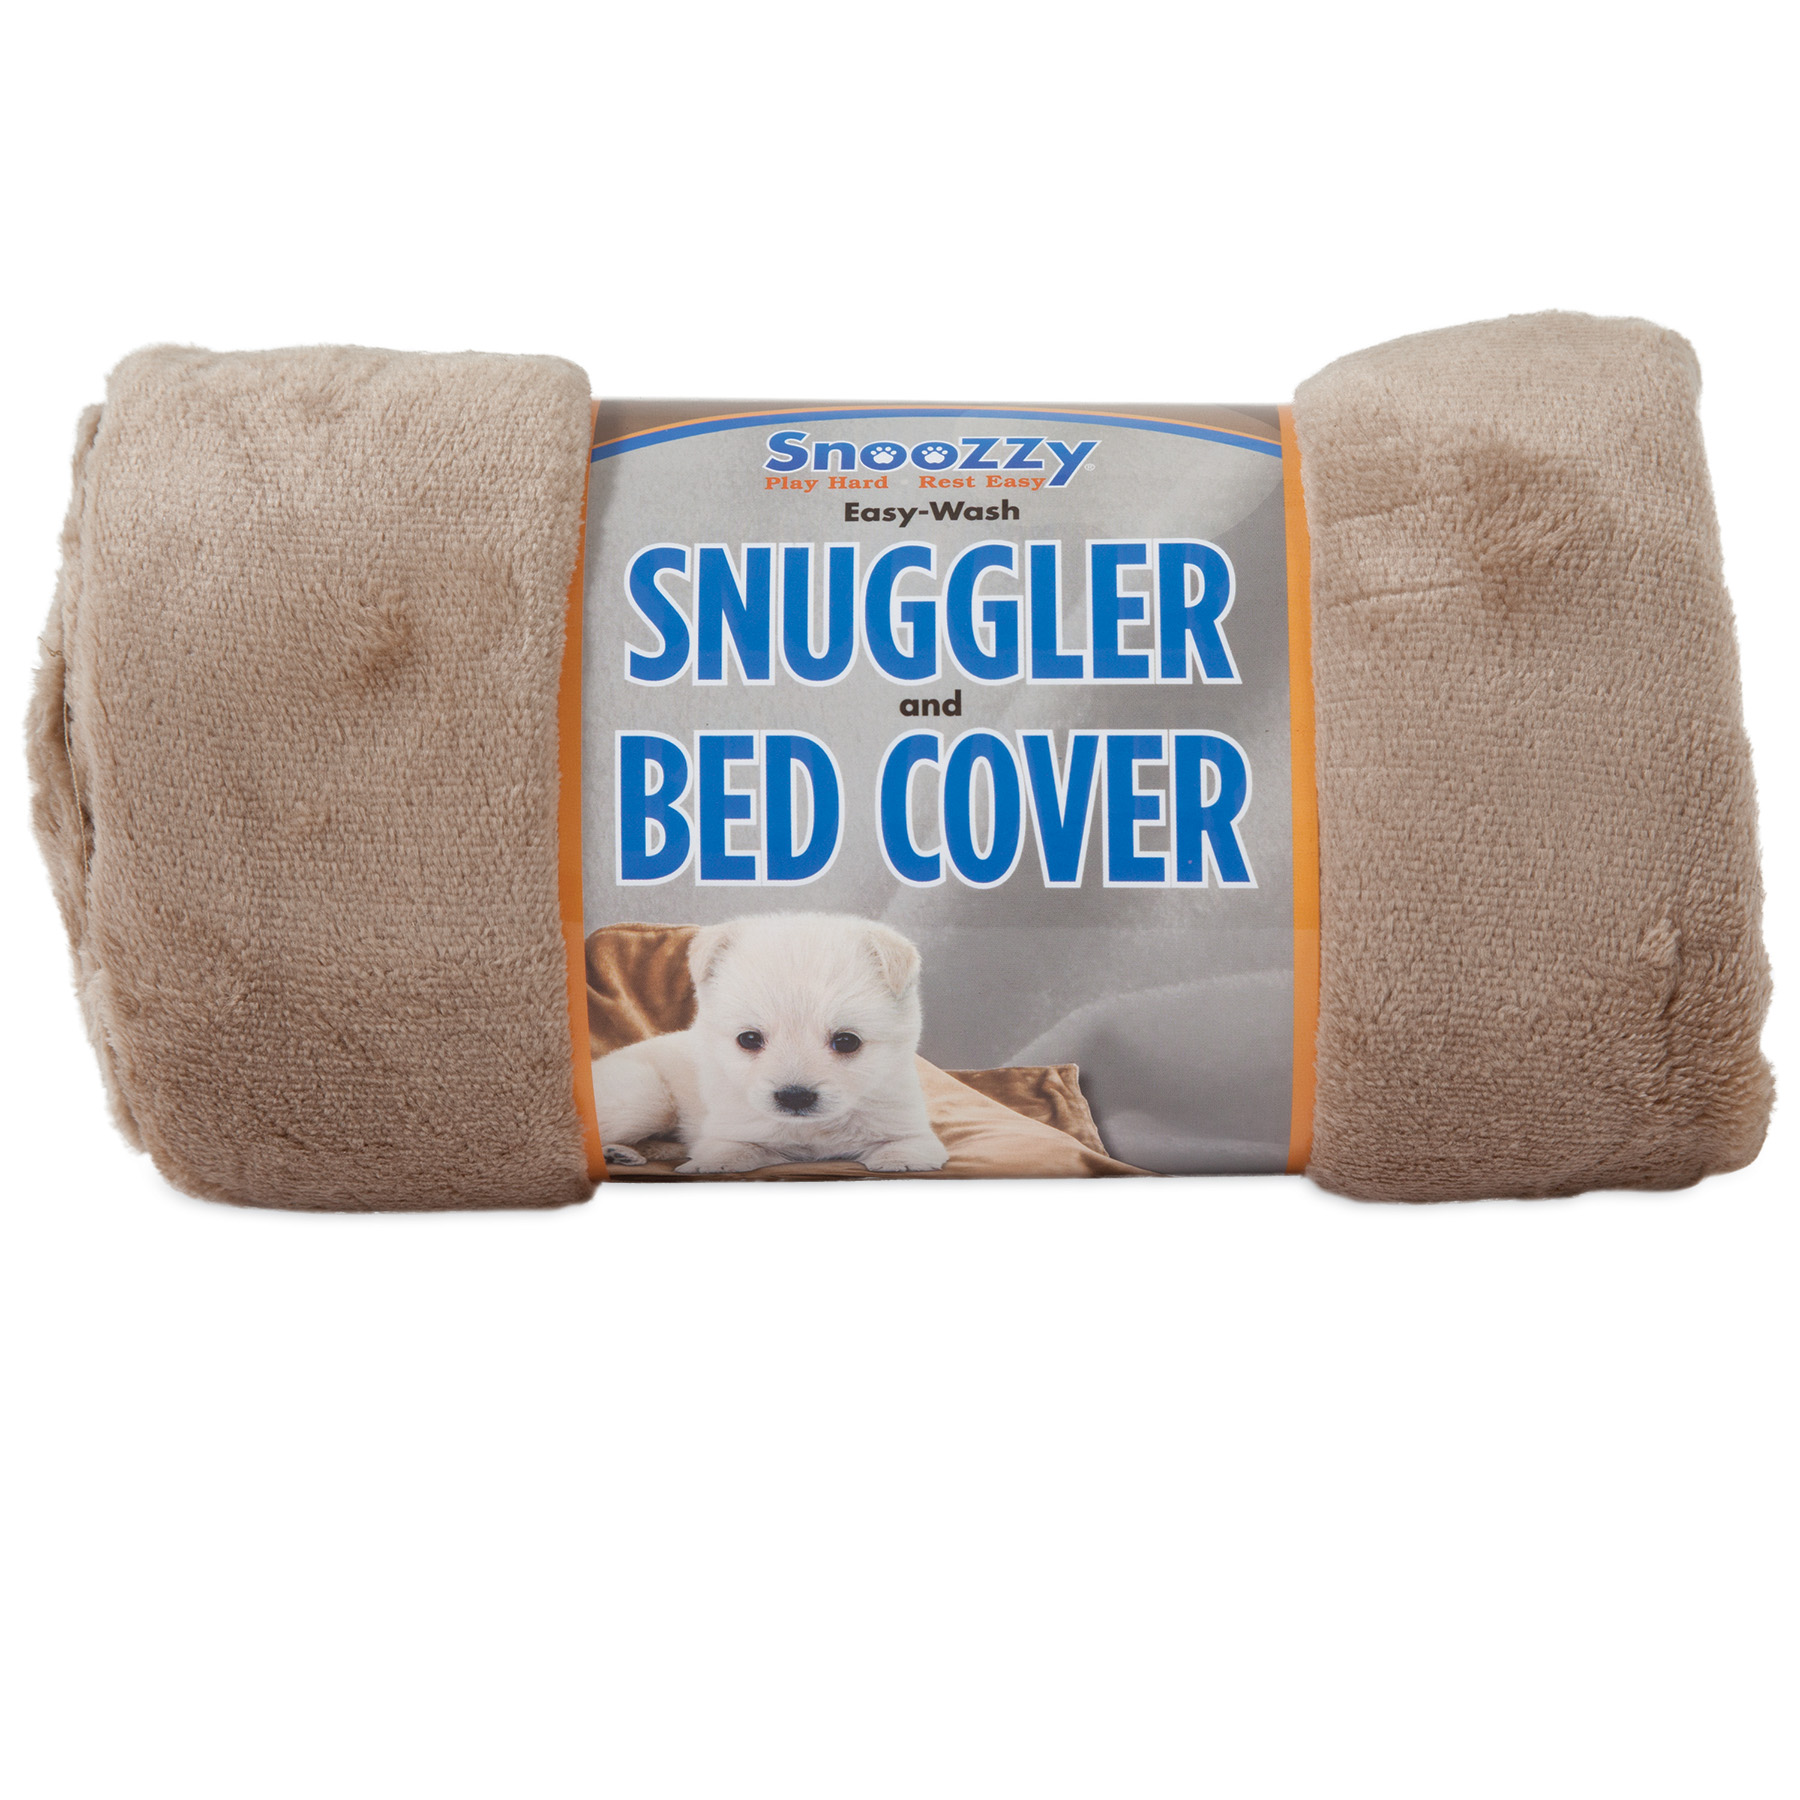 Precision Pet SnooZZy Snuggler Dog Bed Cover, Tan